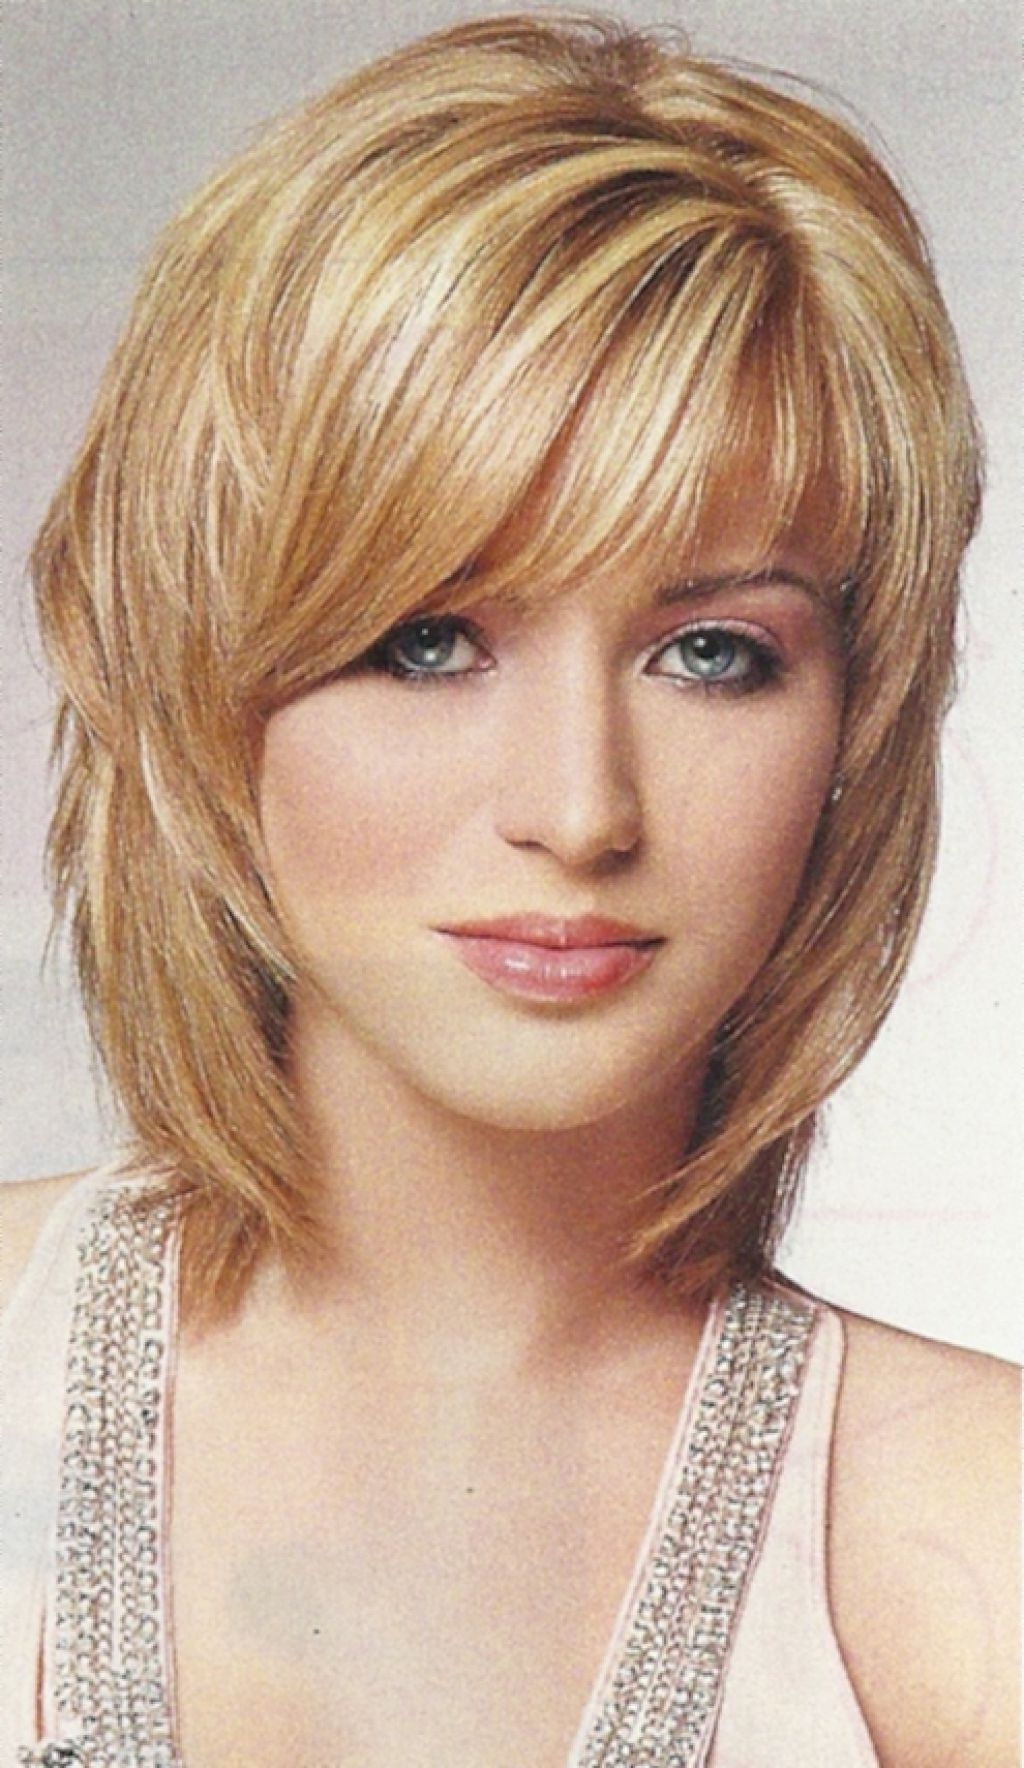 Medium Haircut Ideas – Hairstyle For Women & Man Throughout Favorite Shaggy Hairstyles For Round Faces (View 9 of 15)